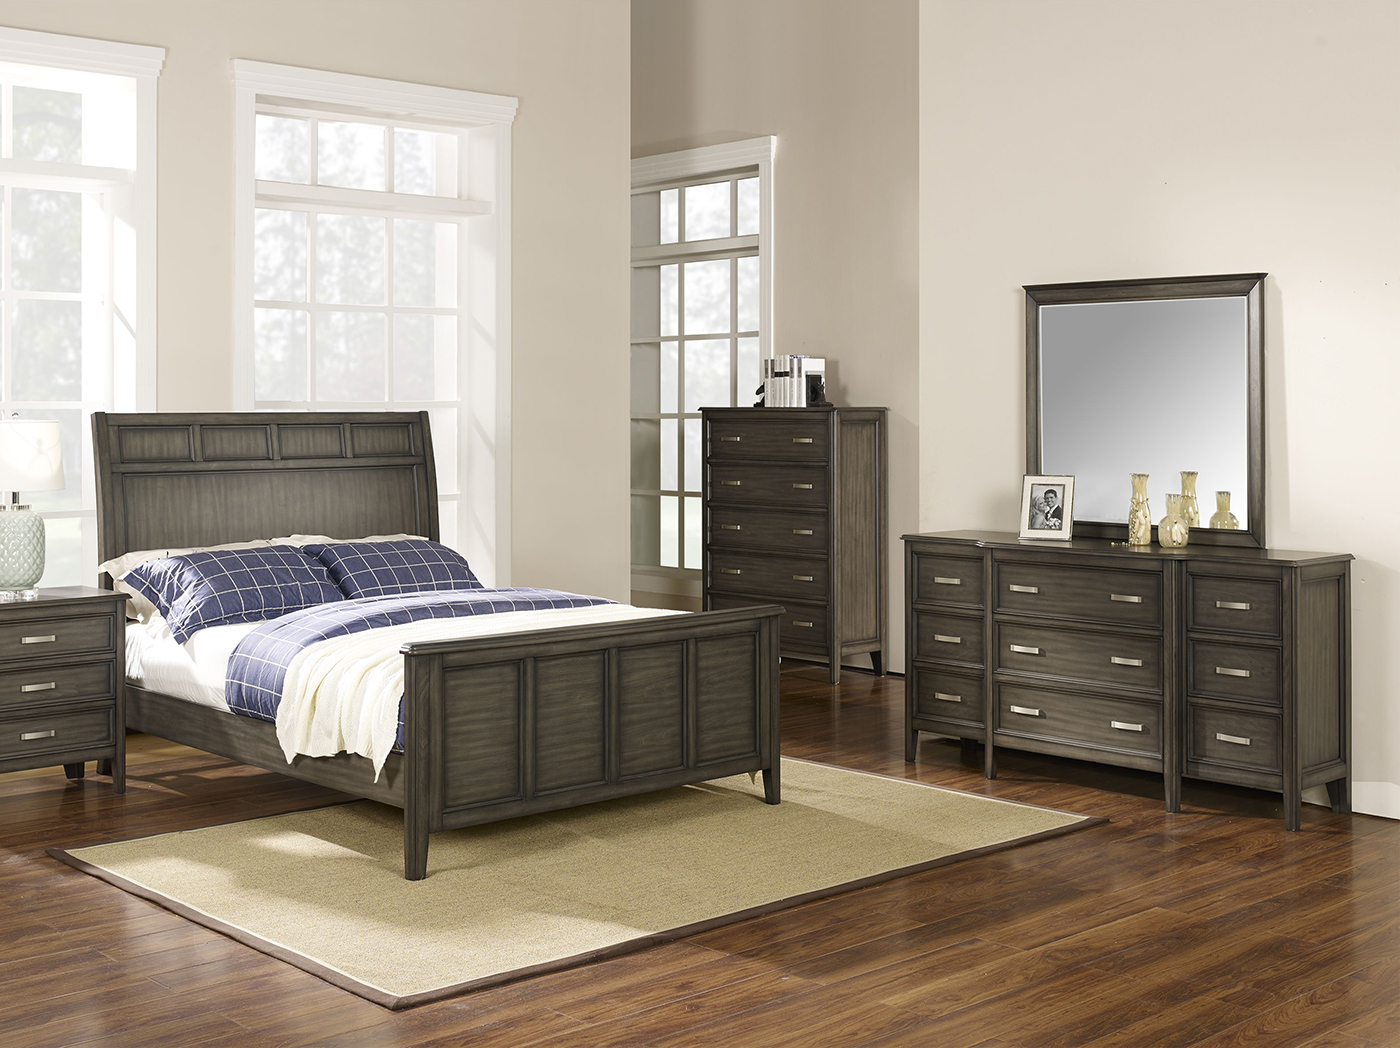 Richfield Smoke King Bed